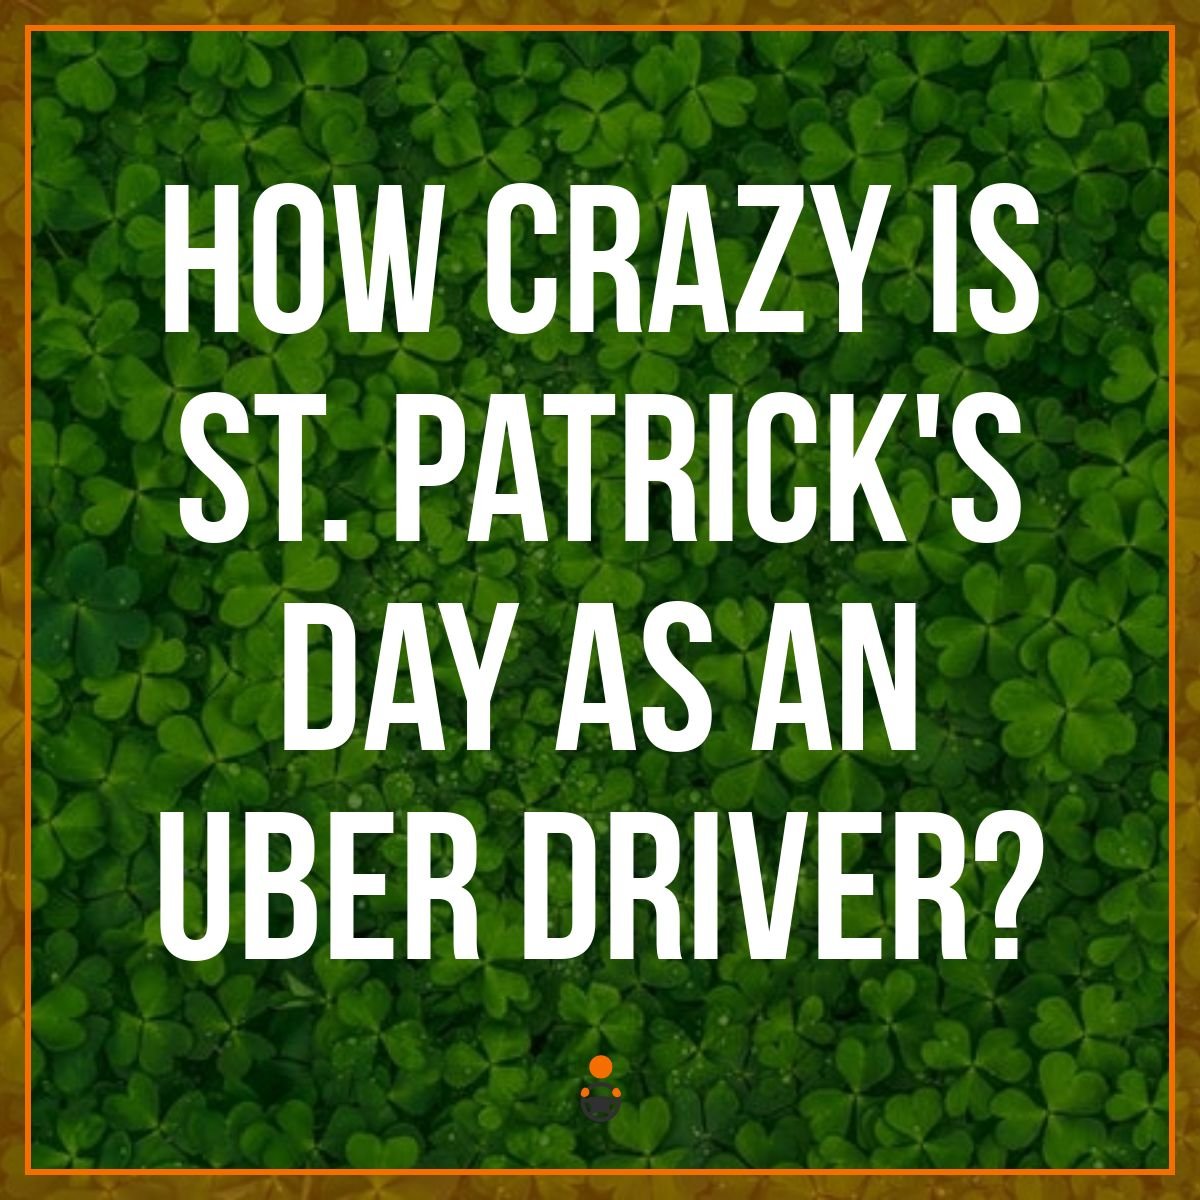 How Crazy is St. Patrick's Day as an Uber Driver?